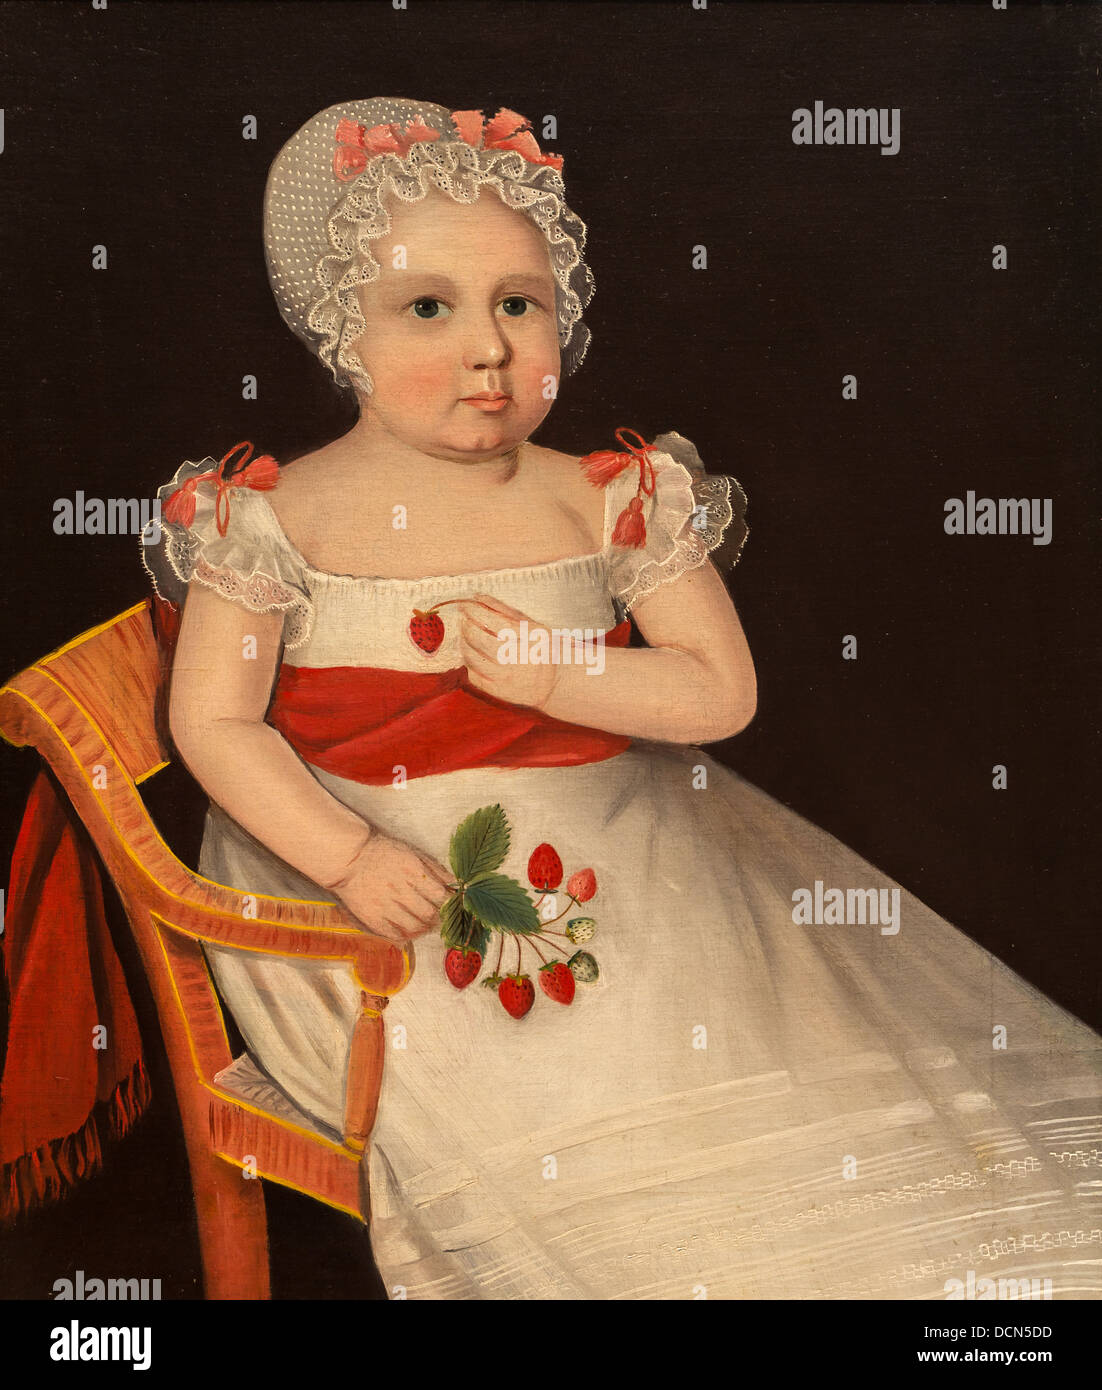 19th century  -  The strawberry girl - Ammi Phillips (1830) Philippe Sauvan-Magnet / Active Museum - Stock Image